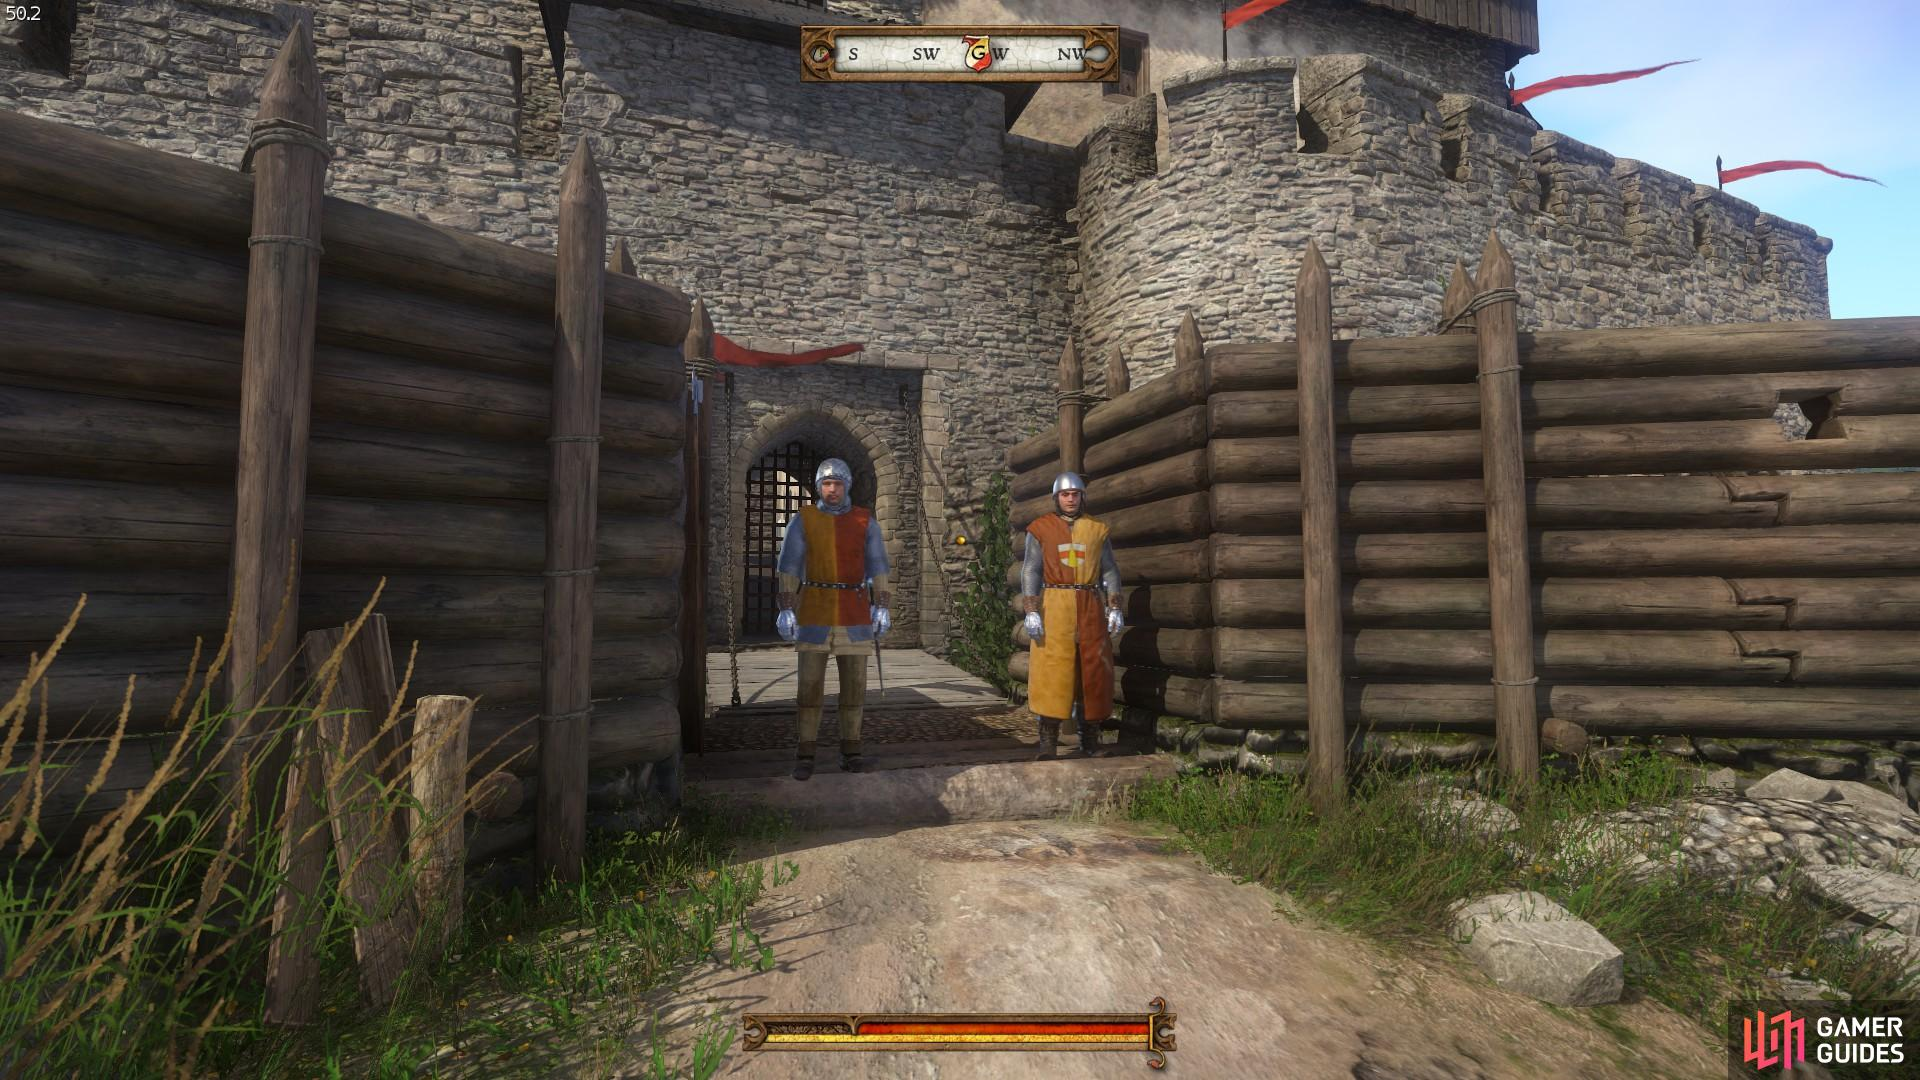 Speak to the guards to pick up the cross-guard for Sir Radzig's sword.